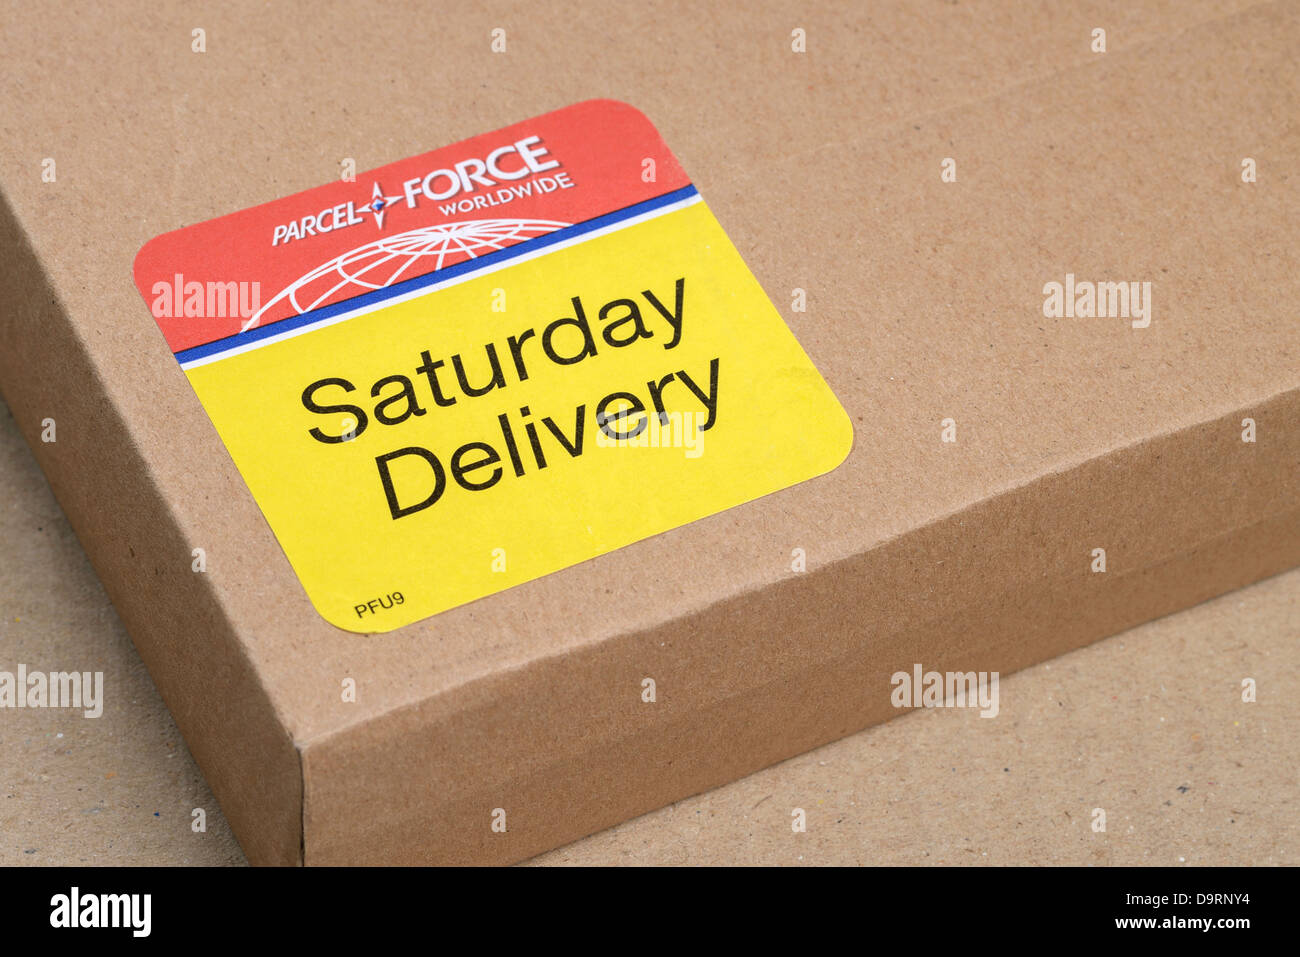 Parcel Force Saturday Delivery sticker label - Stock Image